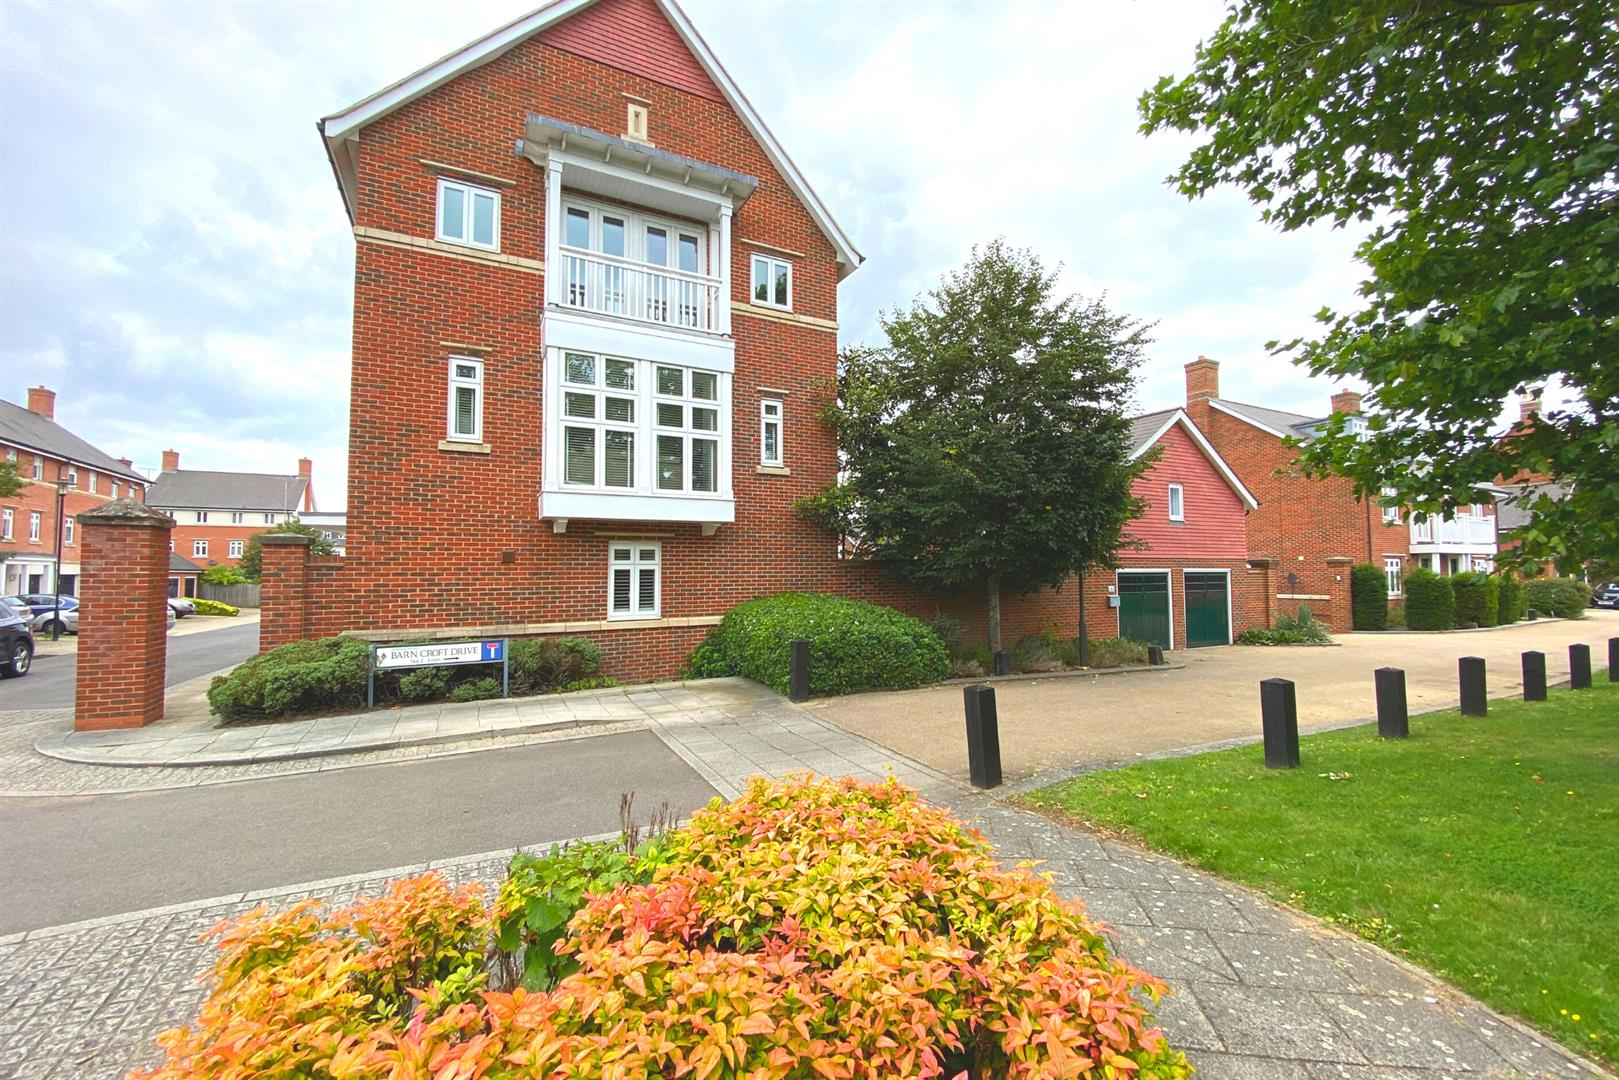 6 bed detached for sale in Lower Earley 1